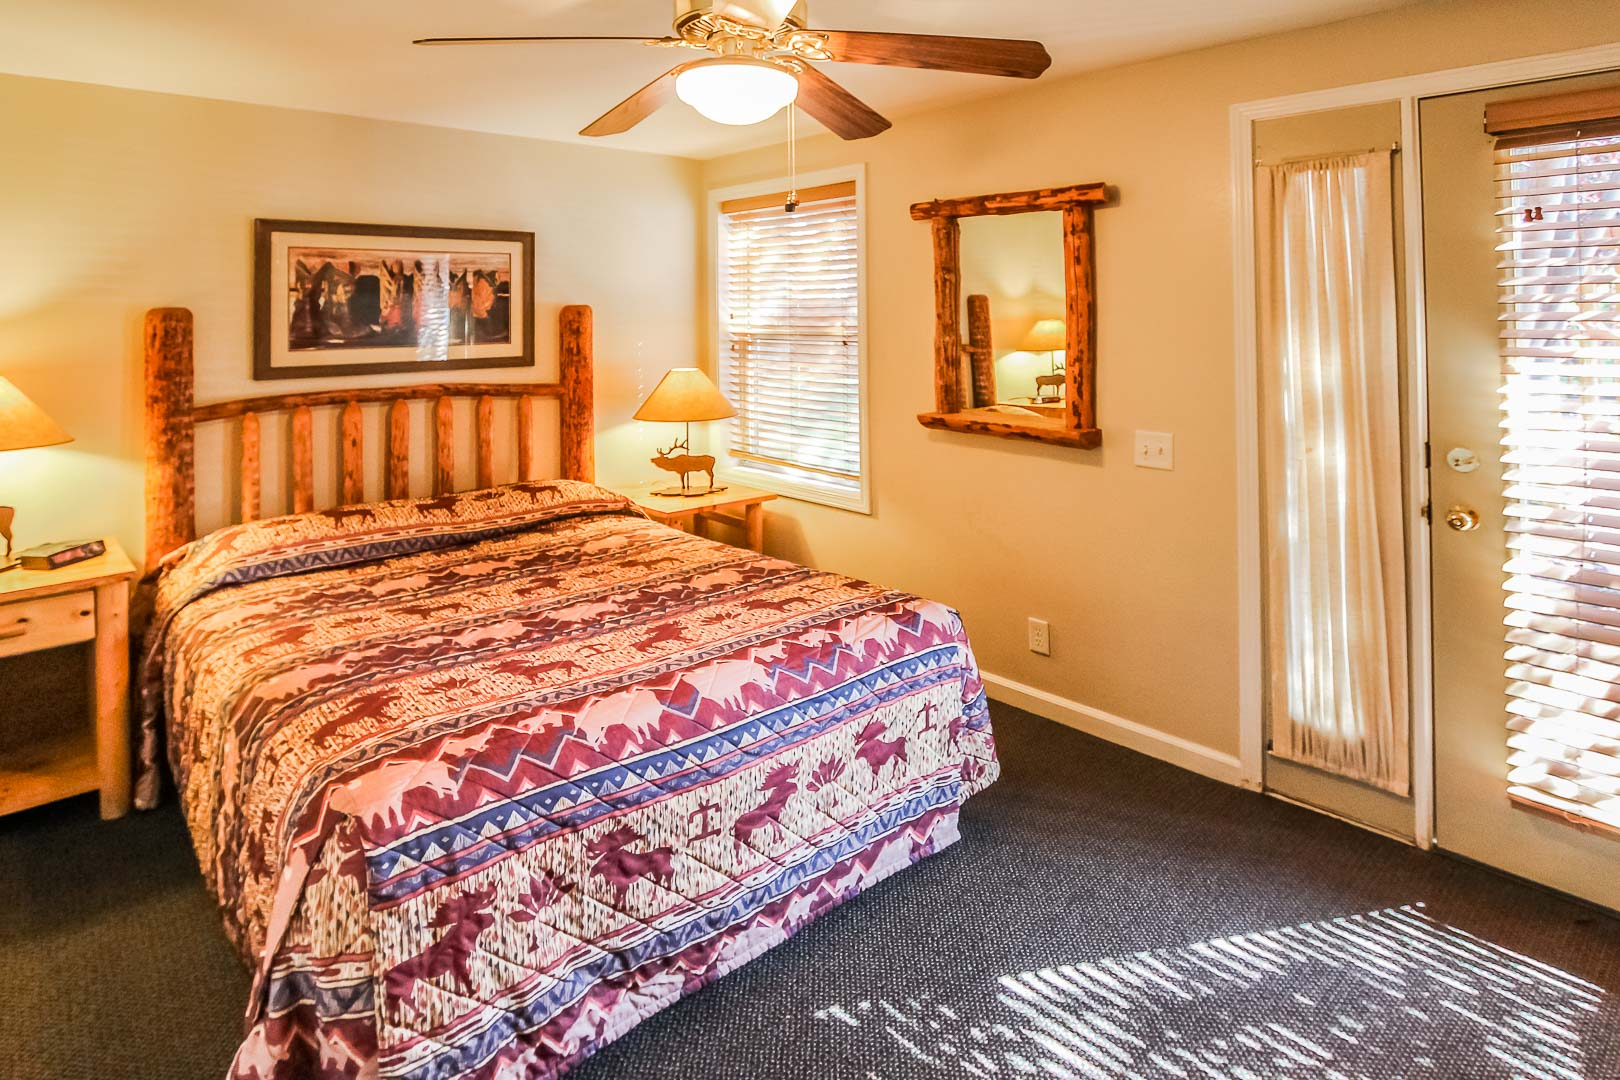 Jackson Pines - Unit Amenities - Bedroom